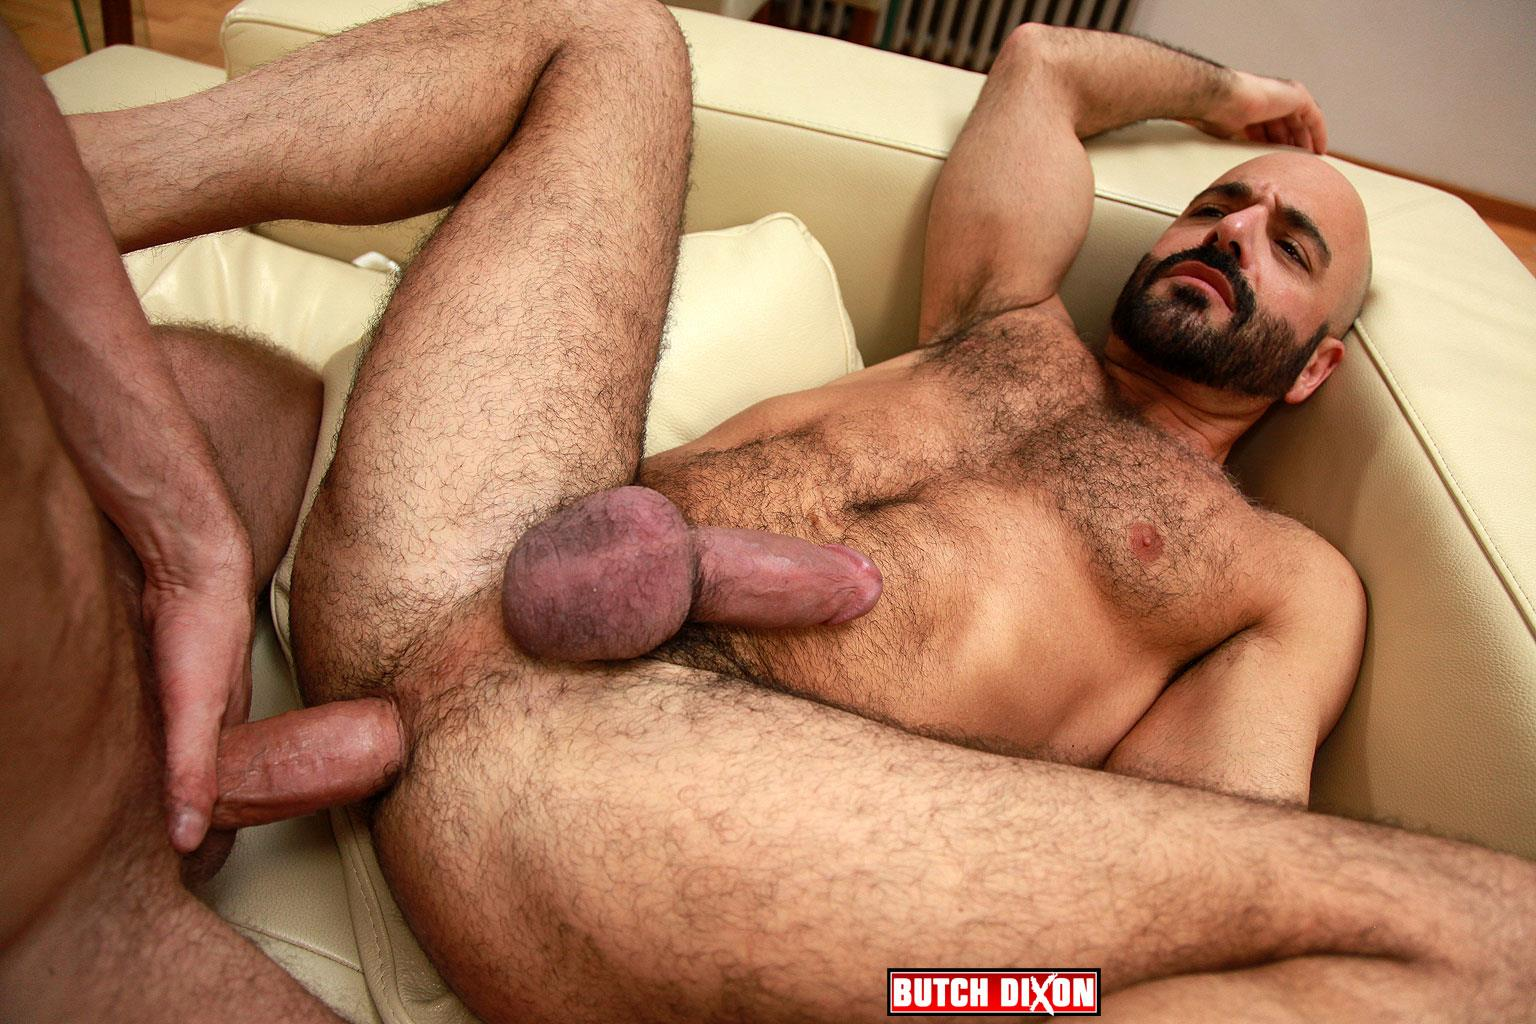 Butch Dixon Adam Russo and Adam Dacre Getting Fucked By A Big Uncut Cock Amateur Gay Porn 09 Adam Russo Getting A Big Bareback Uncut Cock Up His Hairy Ass